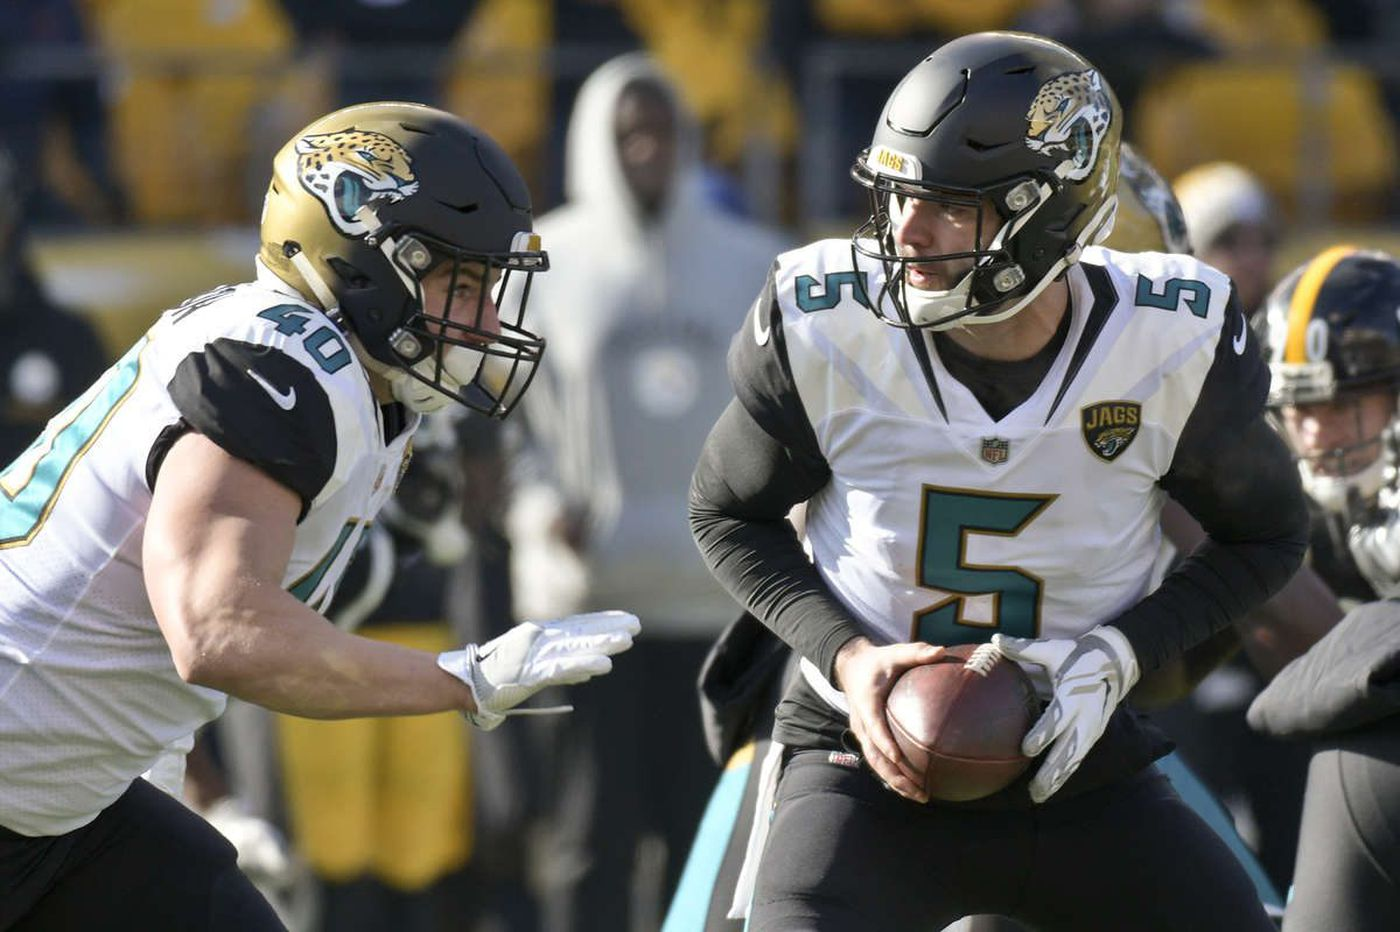 Jaguars' Blake Bortles endures insults - and wins   Marcus Hayes